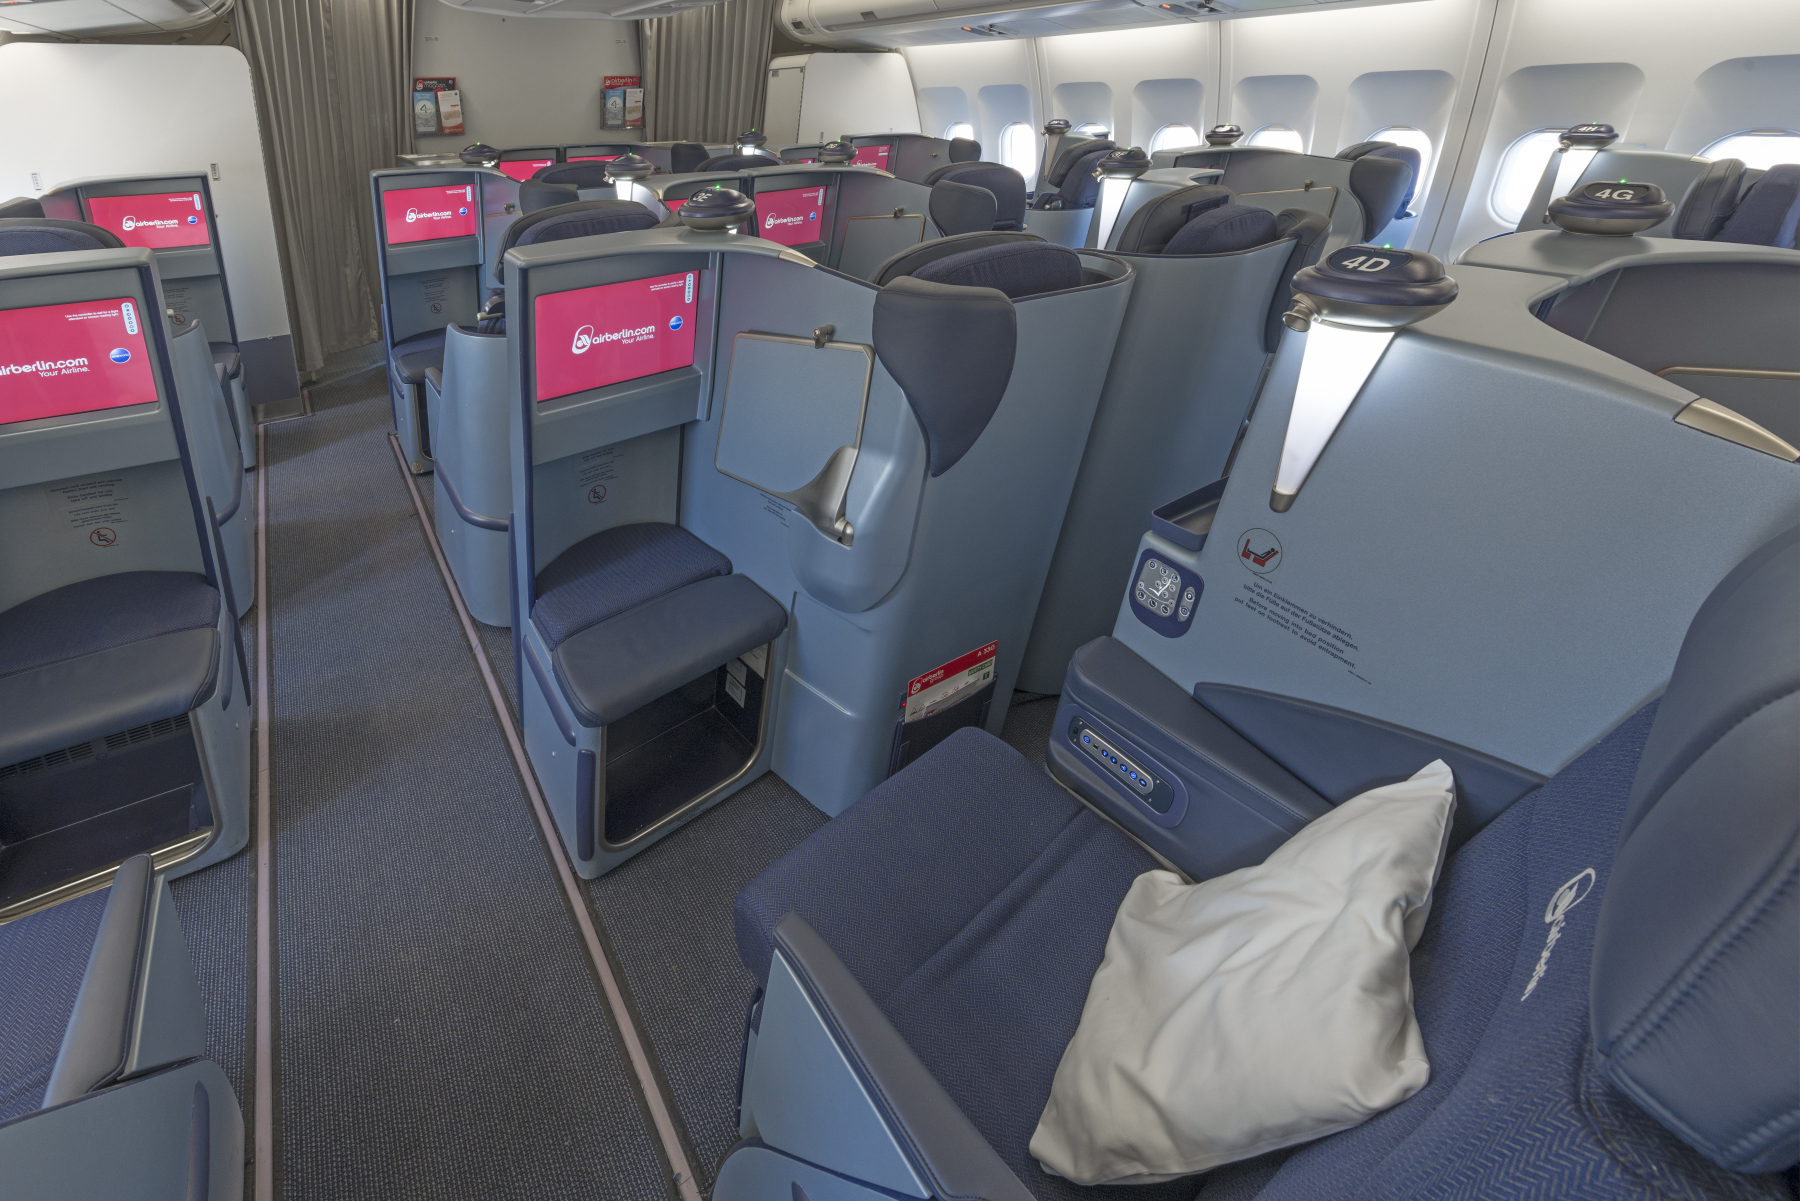 Virgin Atlantic's ex-Airberlin A330s make double bed dream